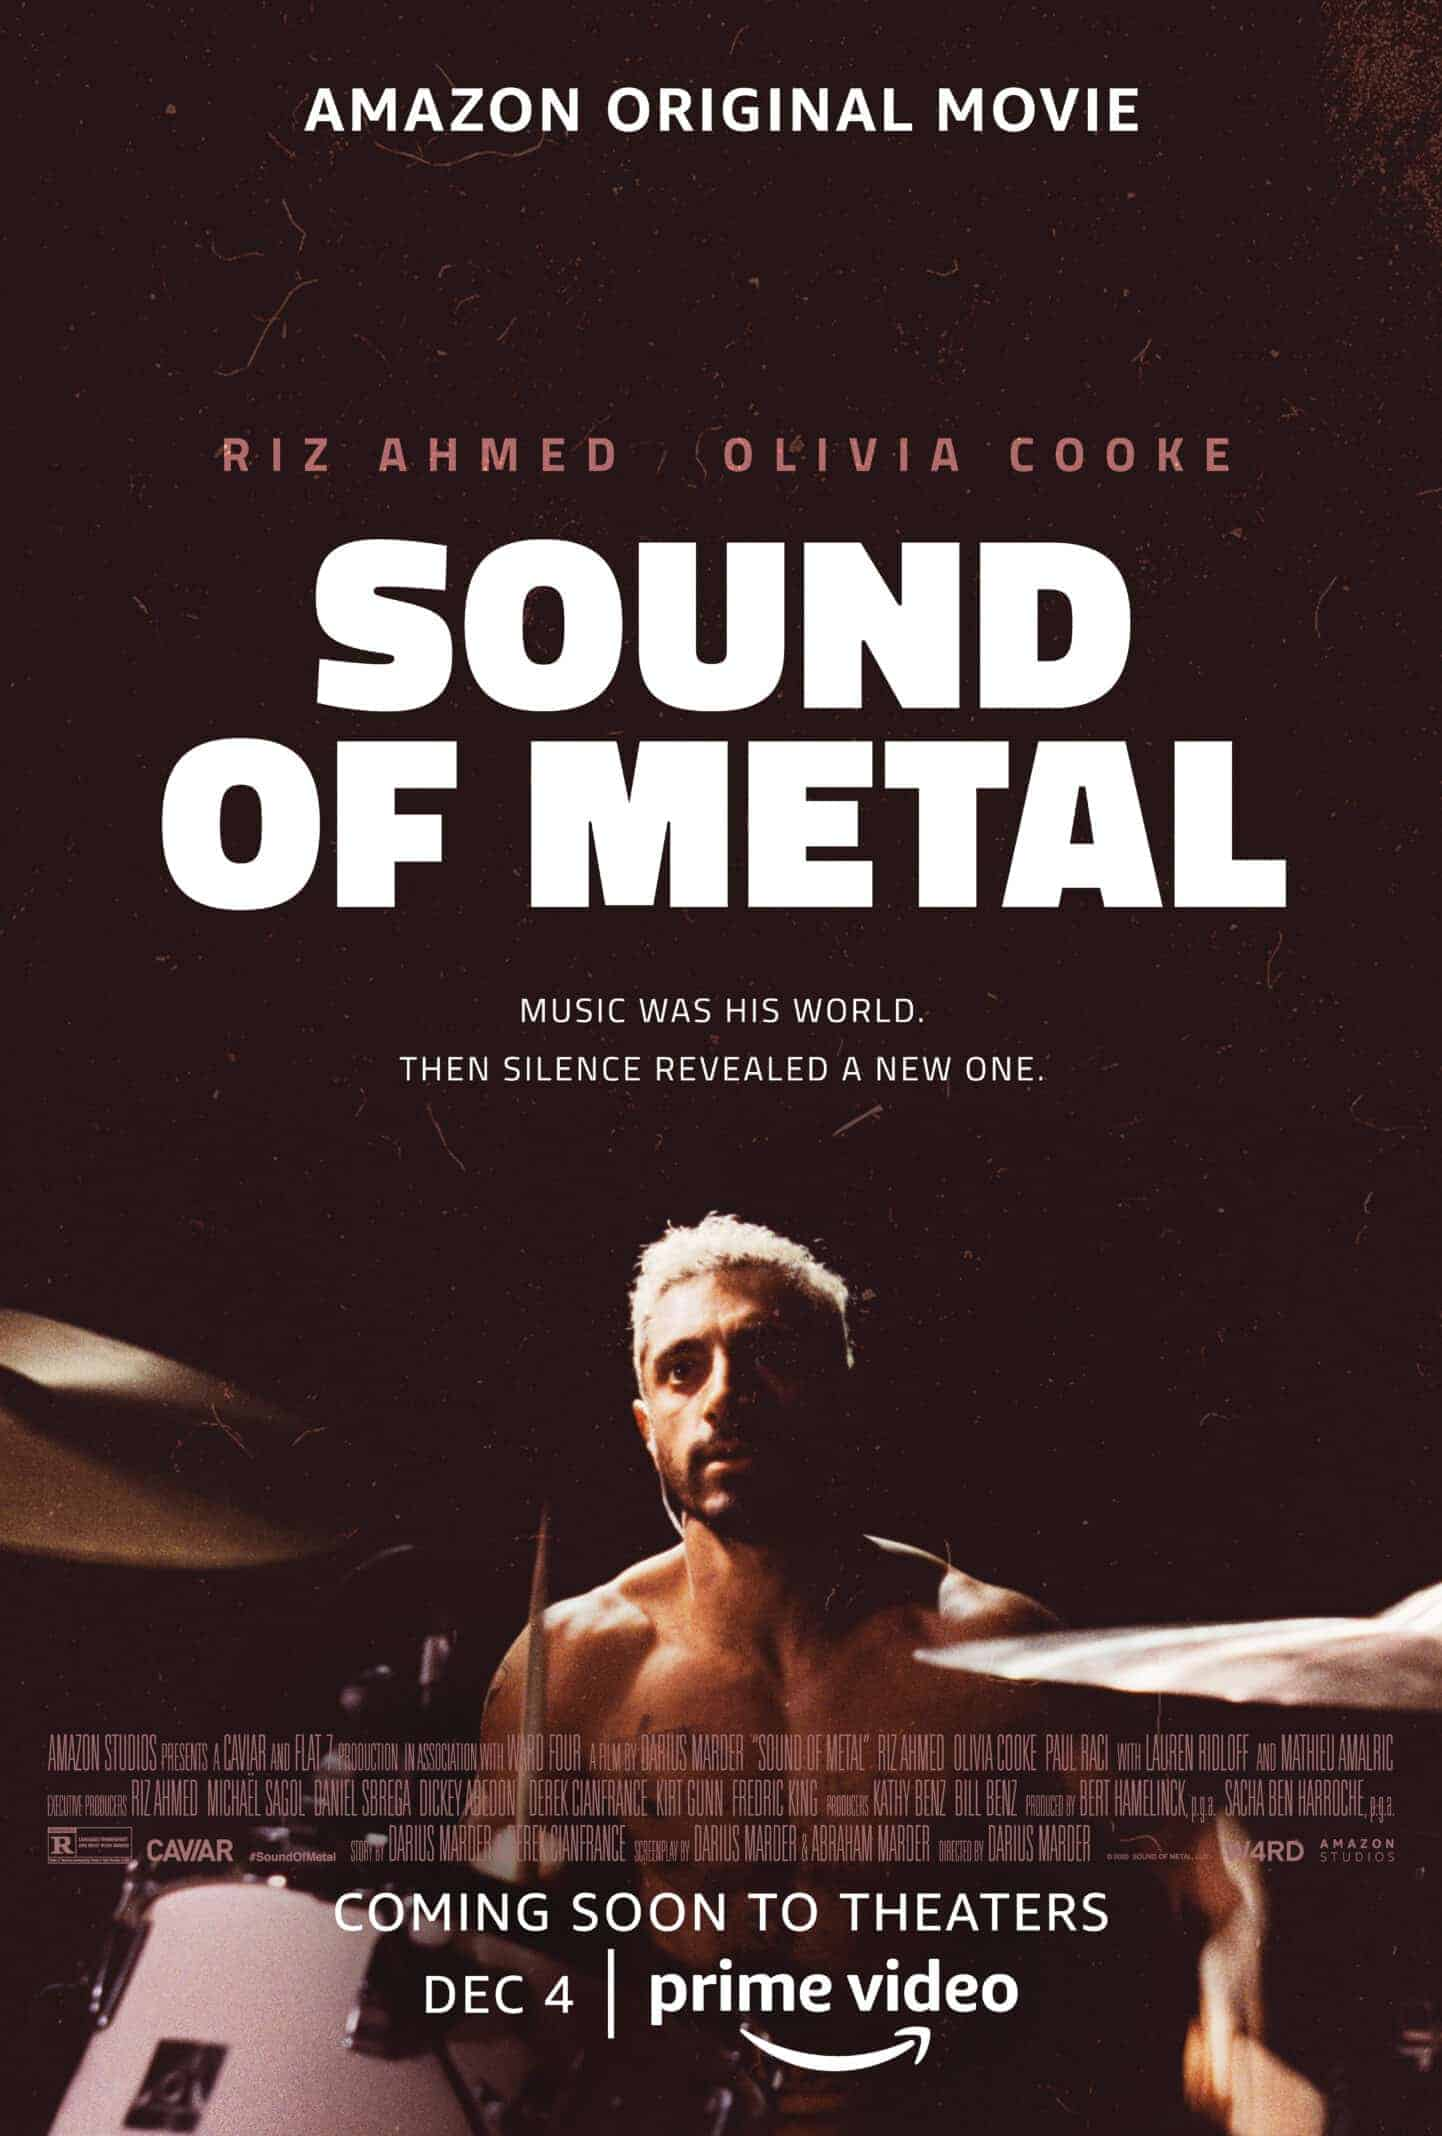 Movie Poster - Sound of Metal